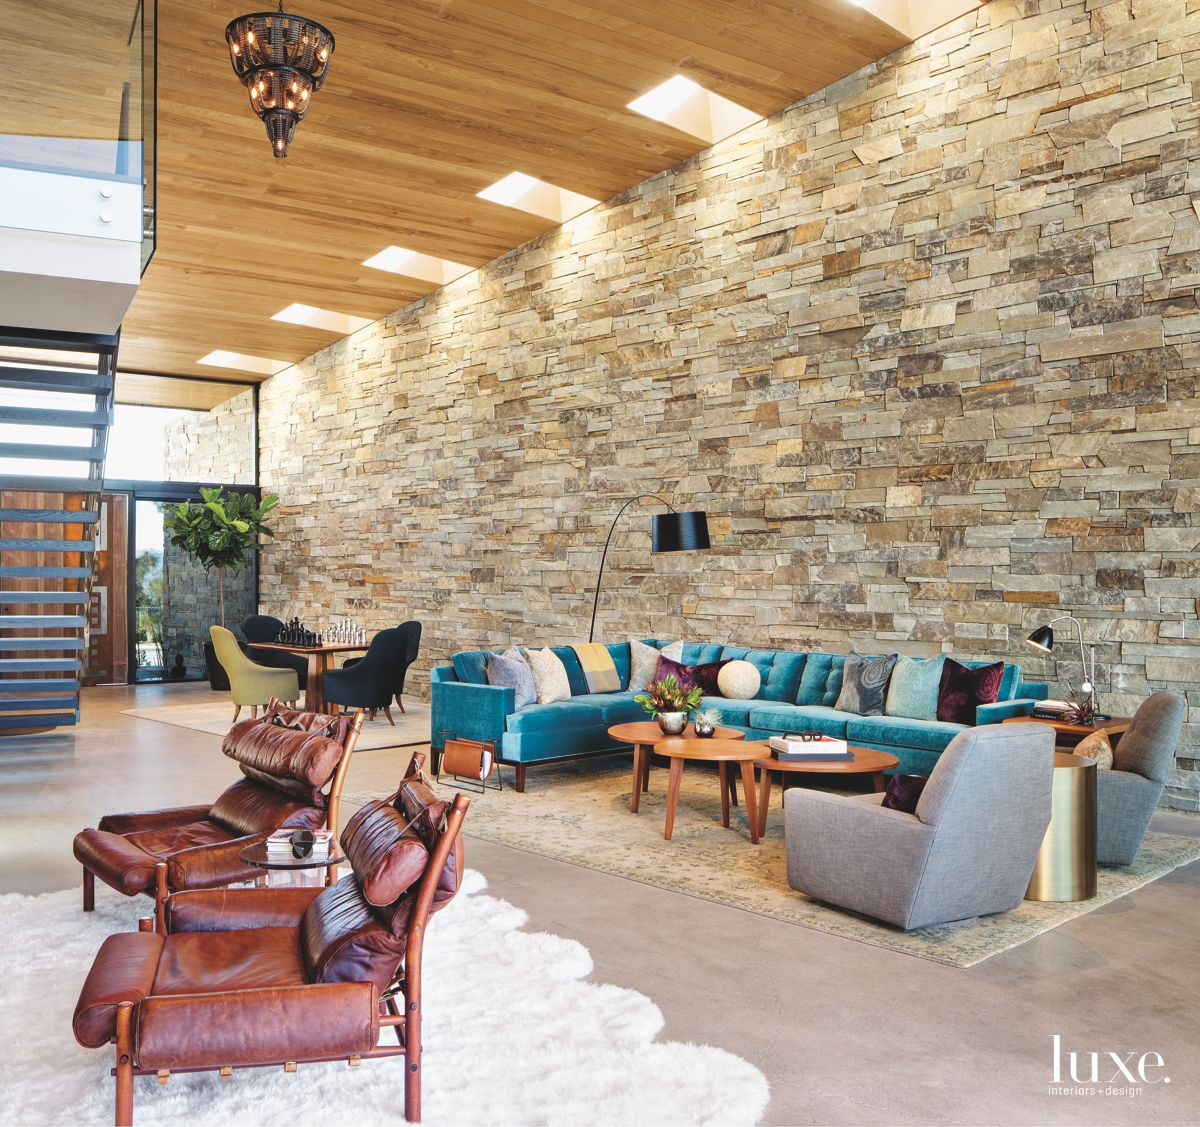 Stone Wall with Toothed Ceiling Great Room with Staircase and Blue Sofa